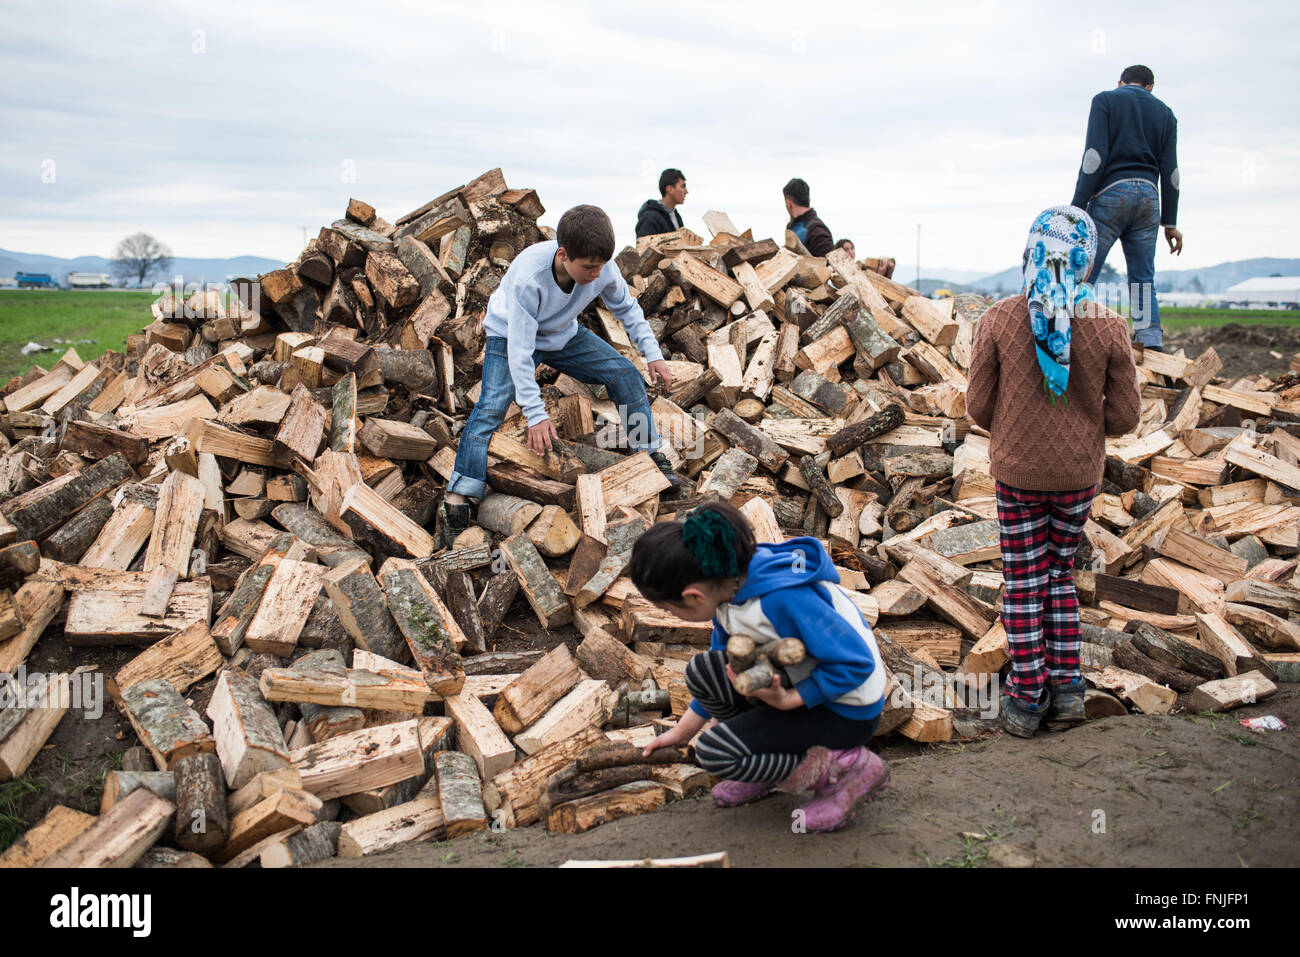 Children are collecting logs for lighting fires to cook, warm and dry their clothes in a field in Idomeni, Greece. - Stock Image